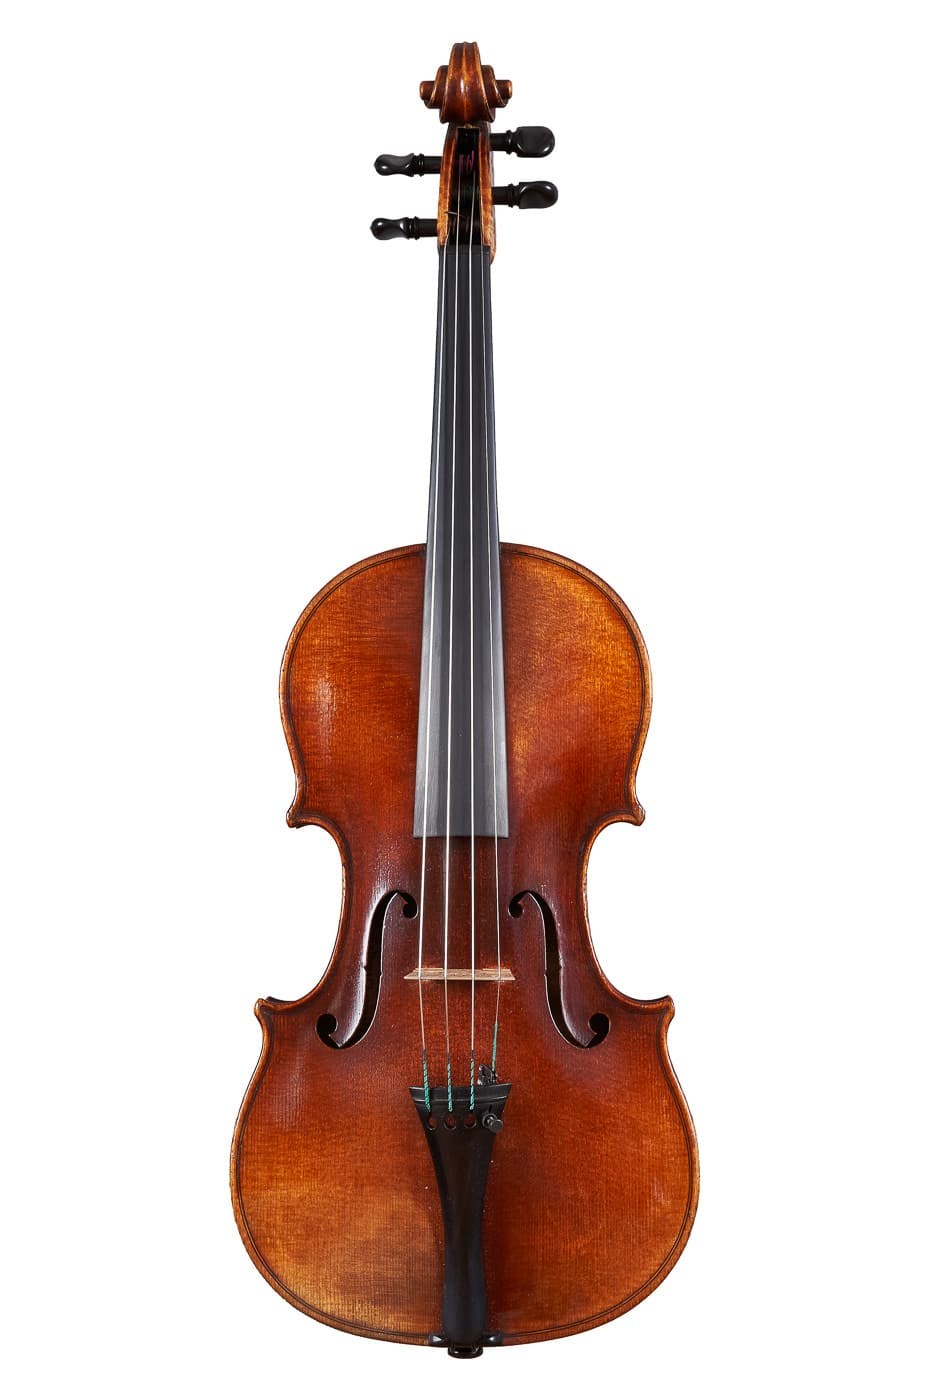 A beautiful example of a restored violin